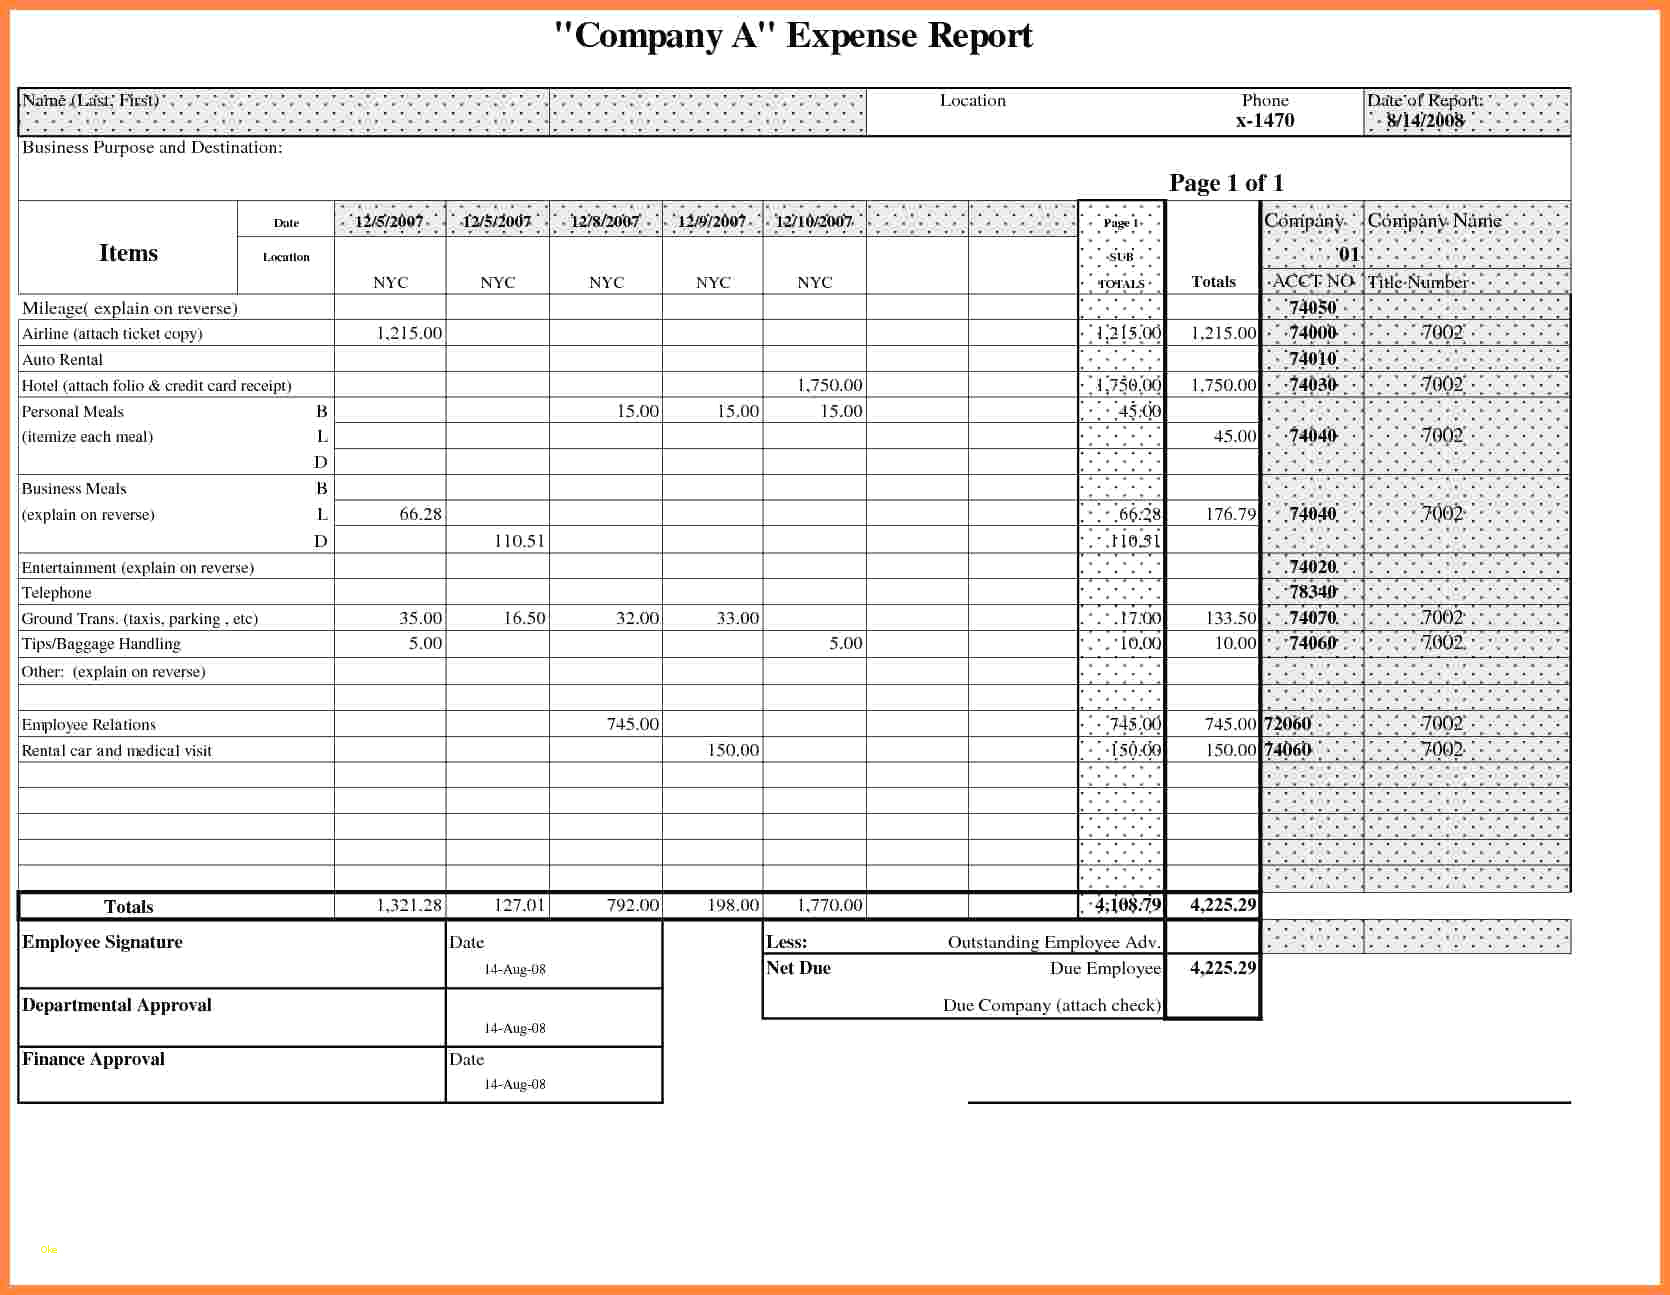 Business Trip Expense Report Template Gallery   Business Cards Ideas Intended For Company Expense Report